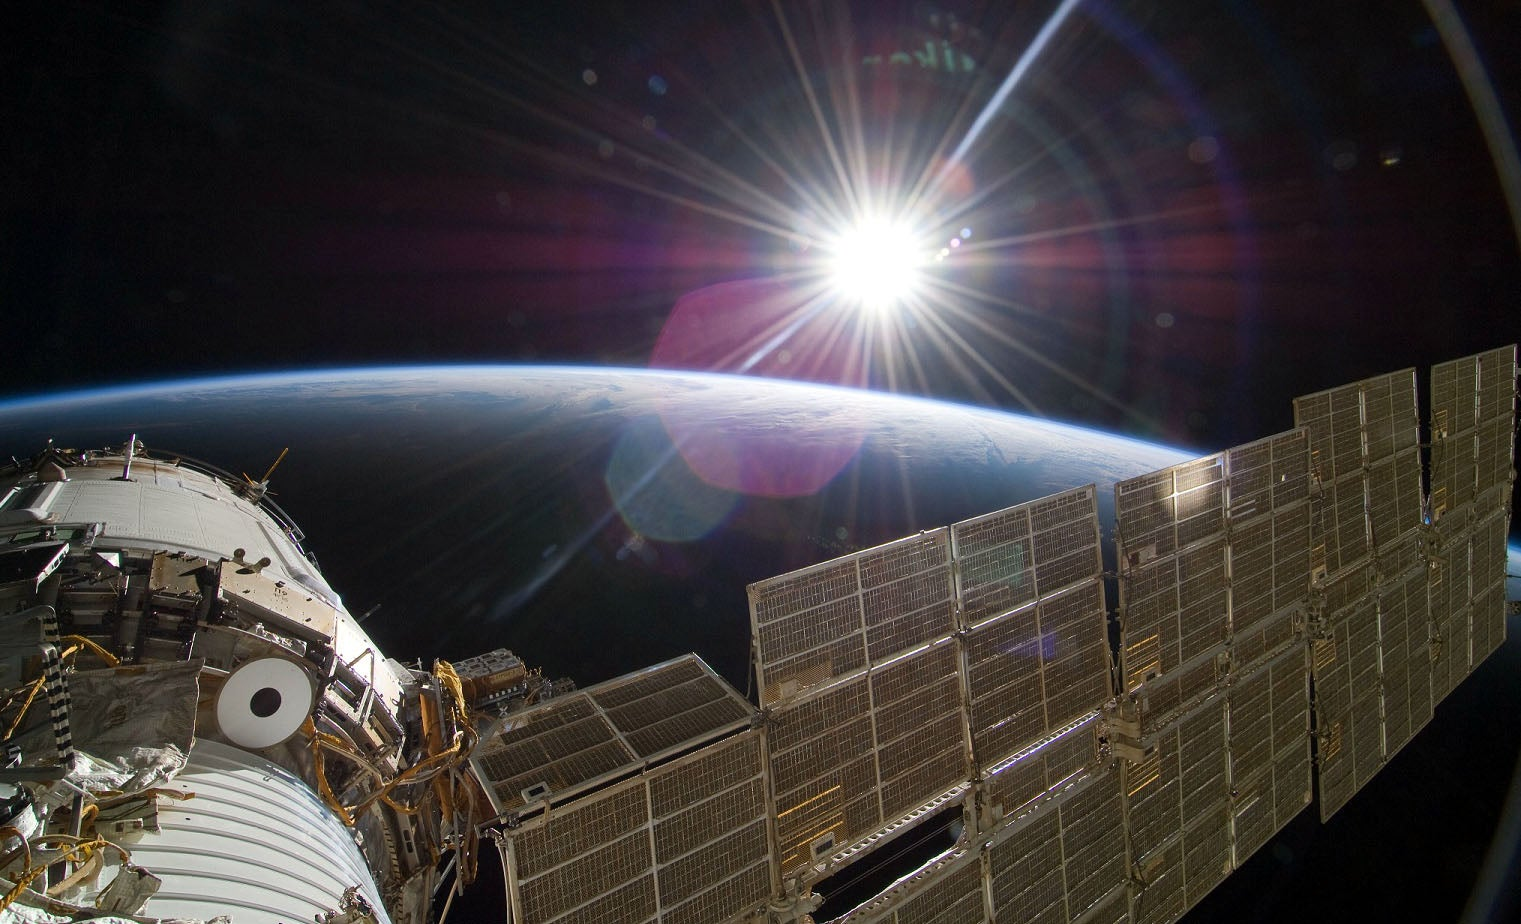 Multi-junction PV cells used in space, photo by NASA